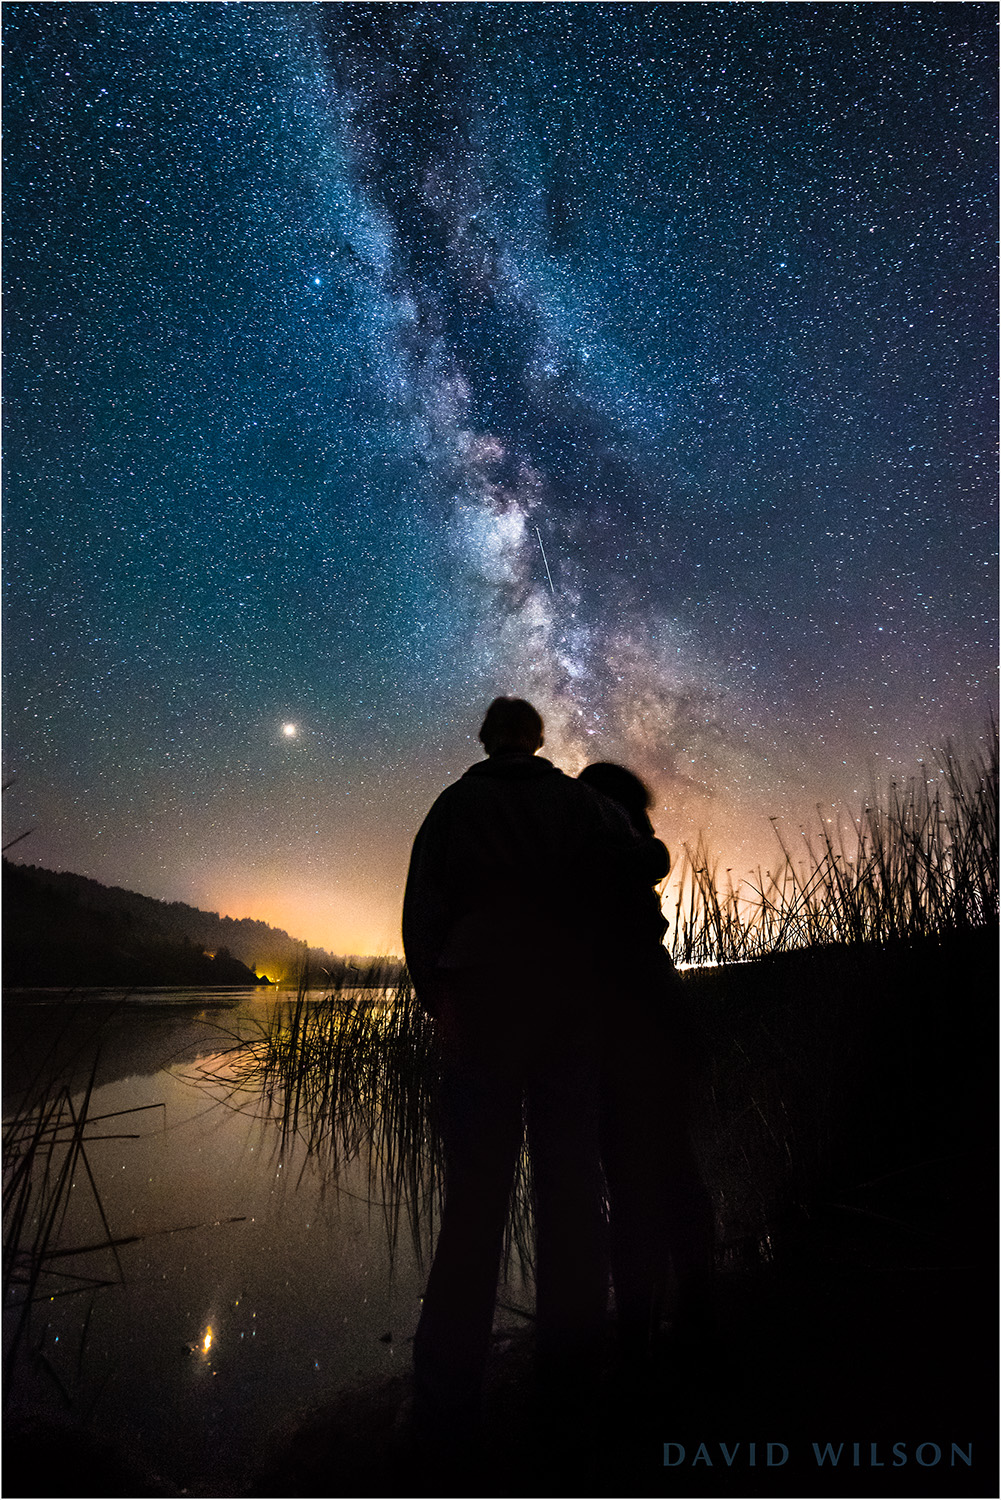 We stood on the still shore of Freshwater Lagoon and watched. Car lights sped by on US Highway 101. Mars hung quietly in the clear sky. The Milky Way rose before us like a great pillar, and a satellite slowly crawled up its length. September 2, 2018 in Humboldt County, California.